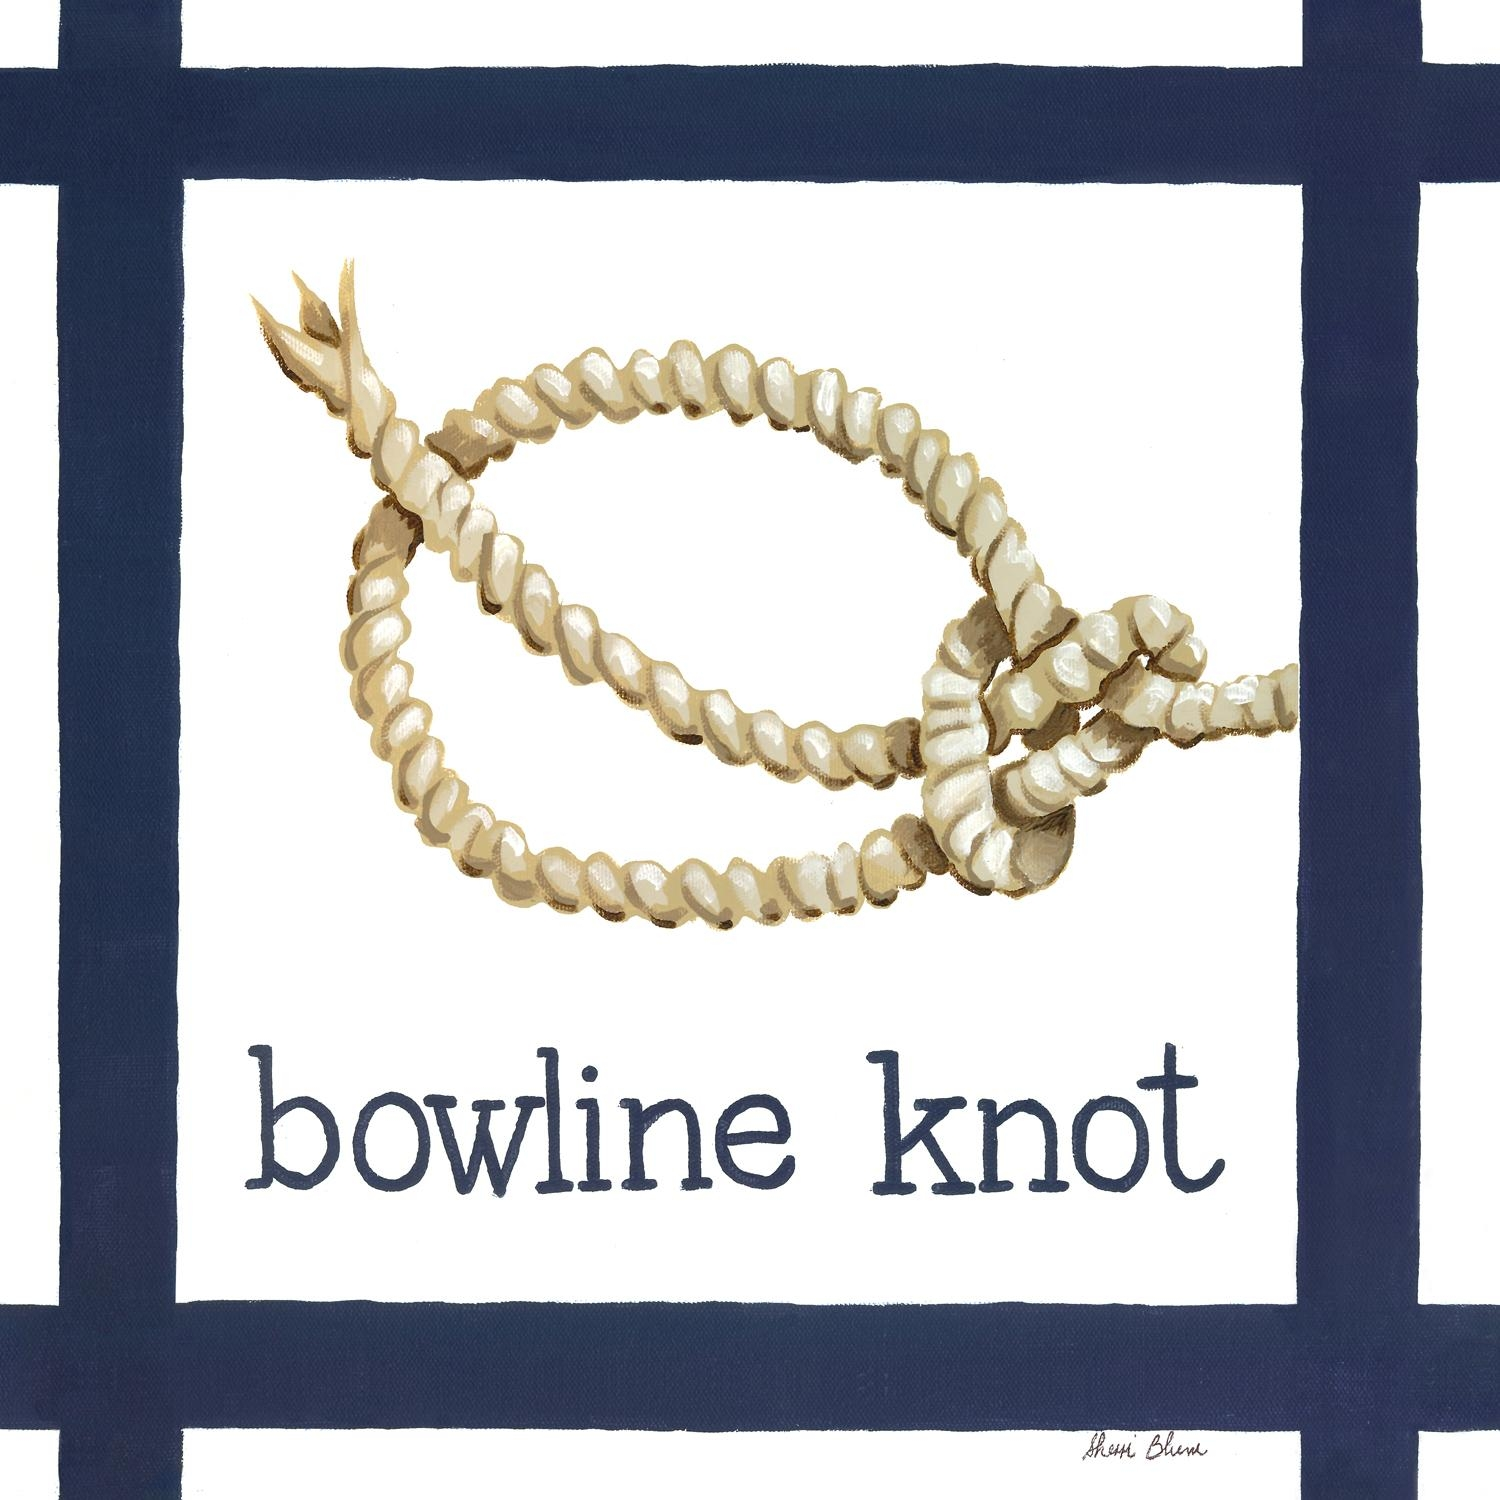 Nautical Nursery Decor, Nautical Knot Bowline Canvas Wall Art For Kids regarding Nautical Canvas Wall Art